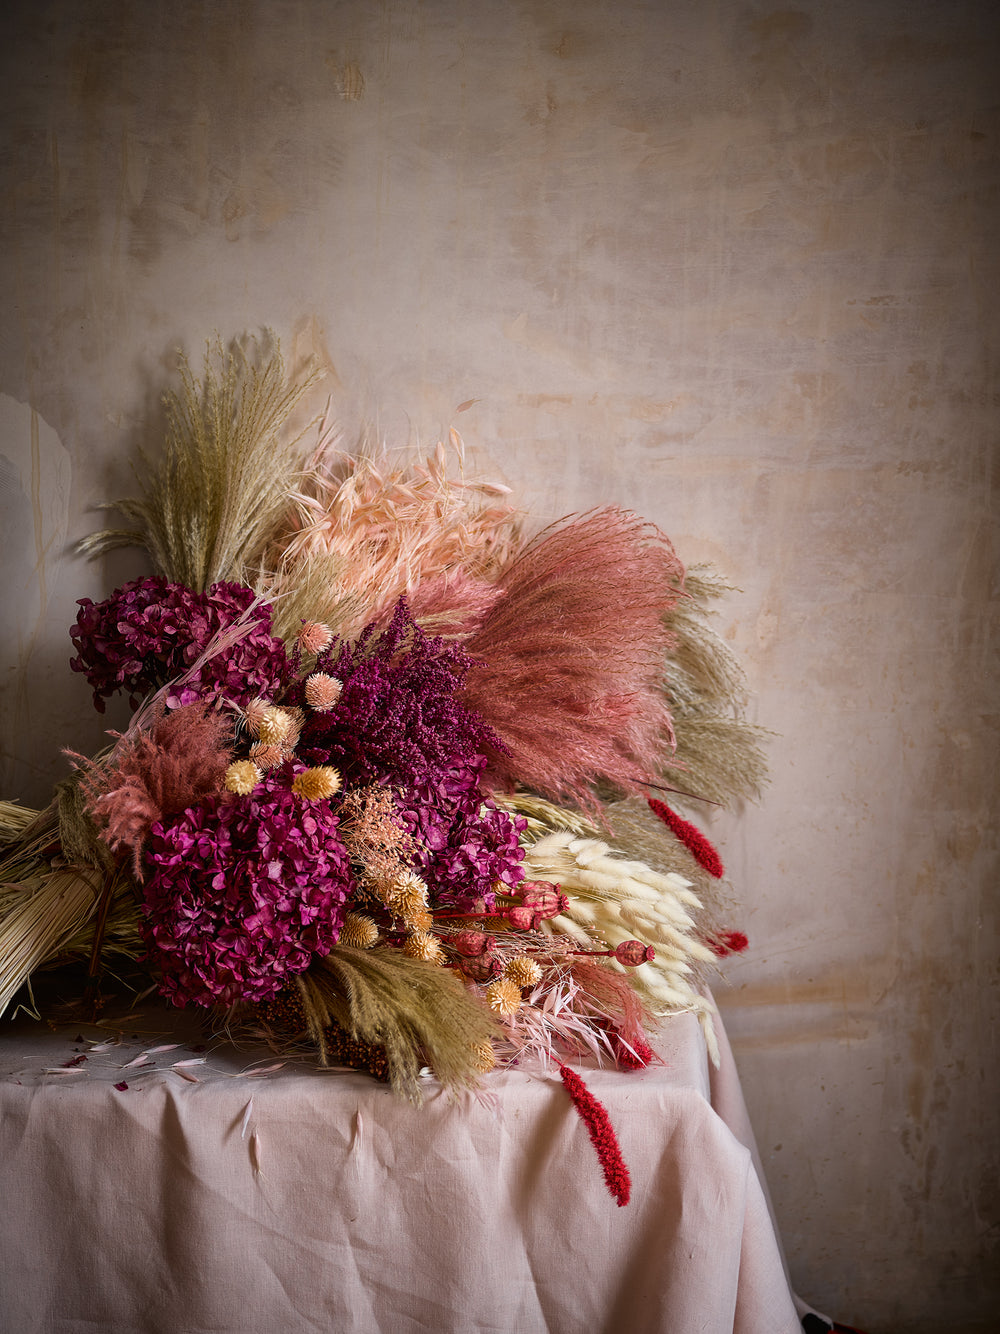 Unbelievably Realistic Faux Exquisite Dried Flowers Fox Flowers